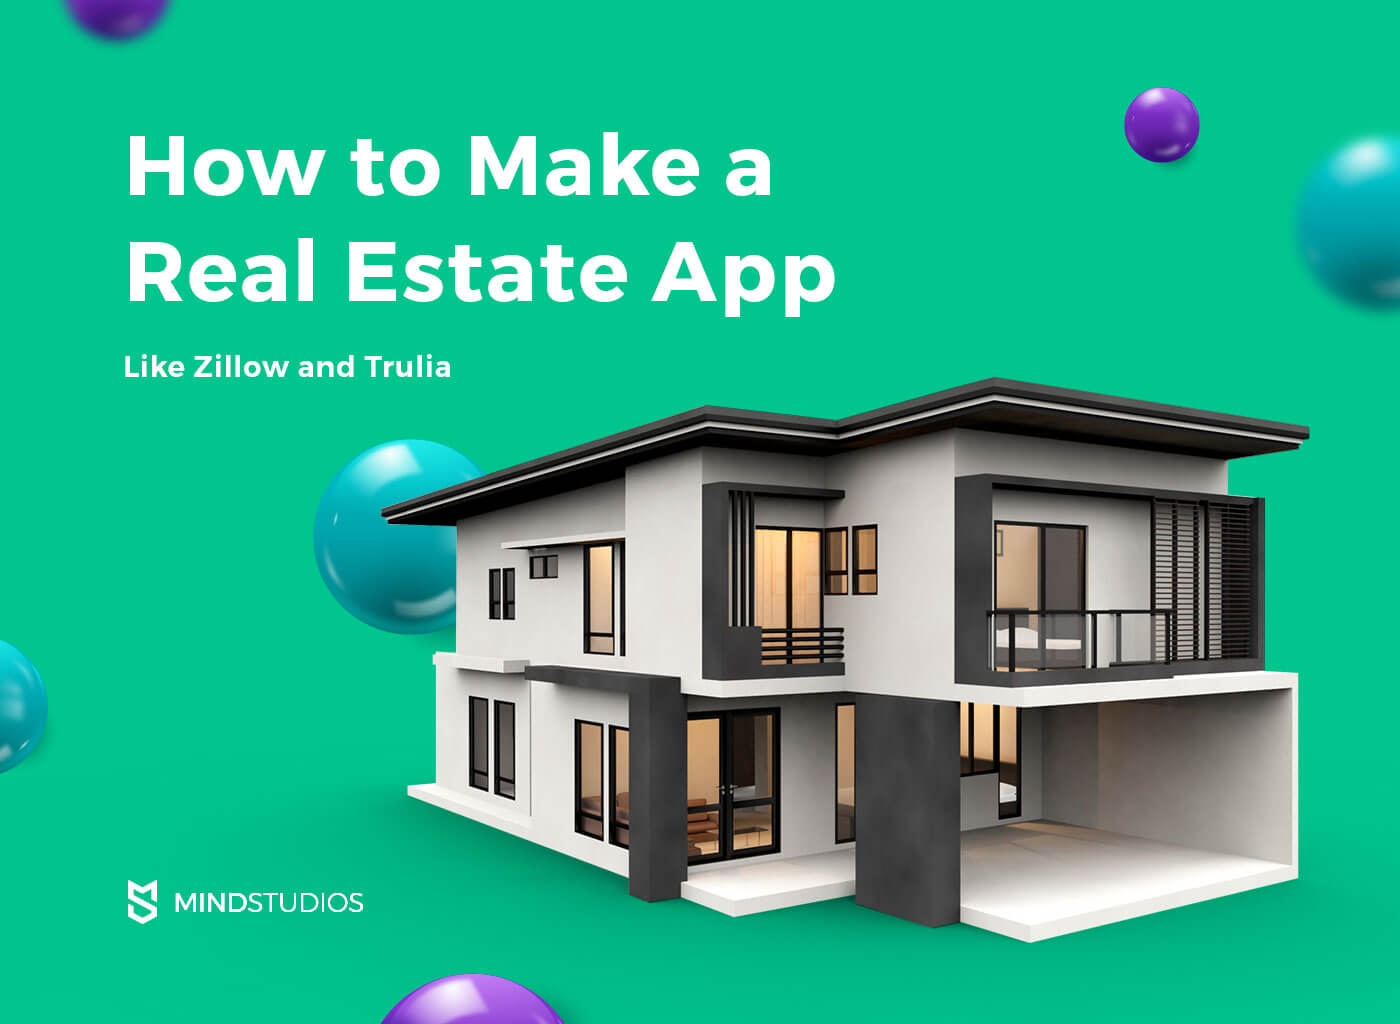 How to Make a Real Estate App Like Zillow and Trulia - Mind ... Zillow Maps Street View on san francisco street view, california street view, find my house street view, mapquest street view, msn maps street view, satellite map street view, funny google street view, nokia maps street view, bing maps street view, zillow satellite view of property, google maps street view, apple maps street view, yandex maps street view, homes from street view, aol maps street view, street level driving view, google earth street view, queens ny street view, see your house street view, 360 degree maps street view,